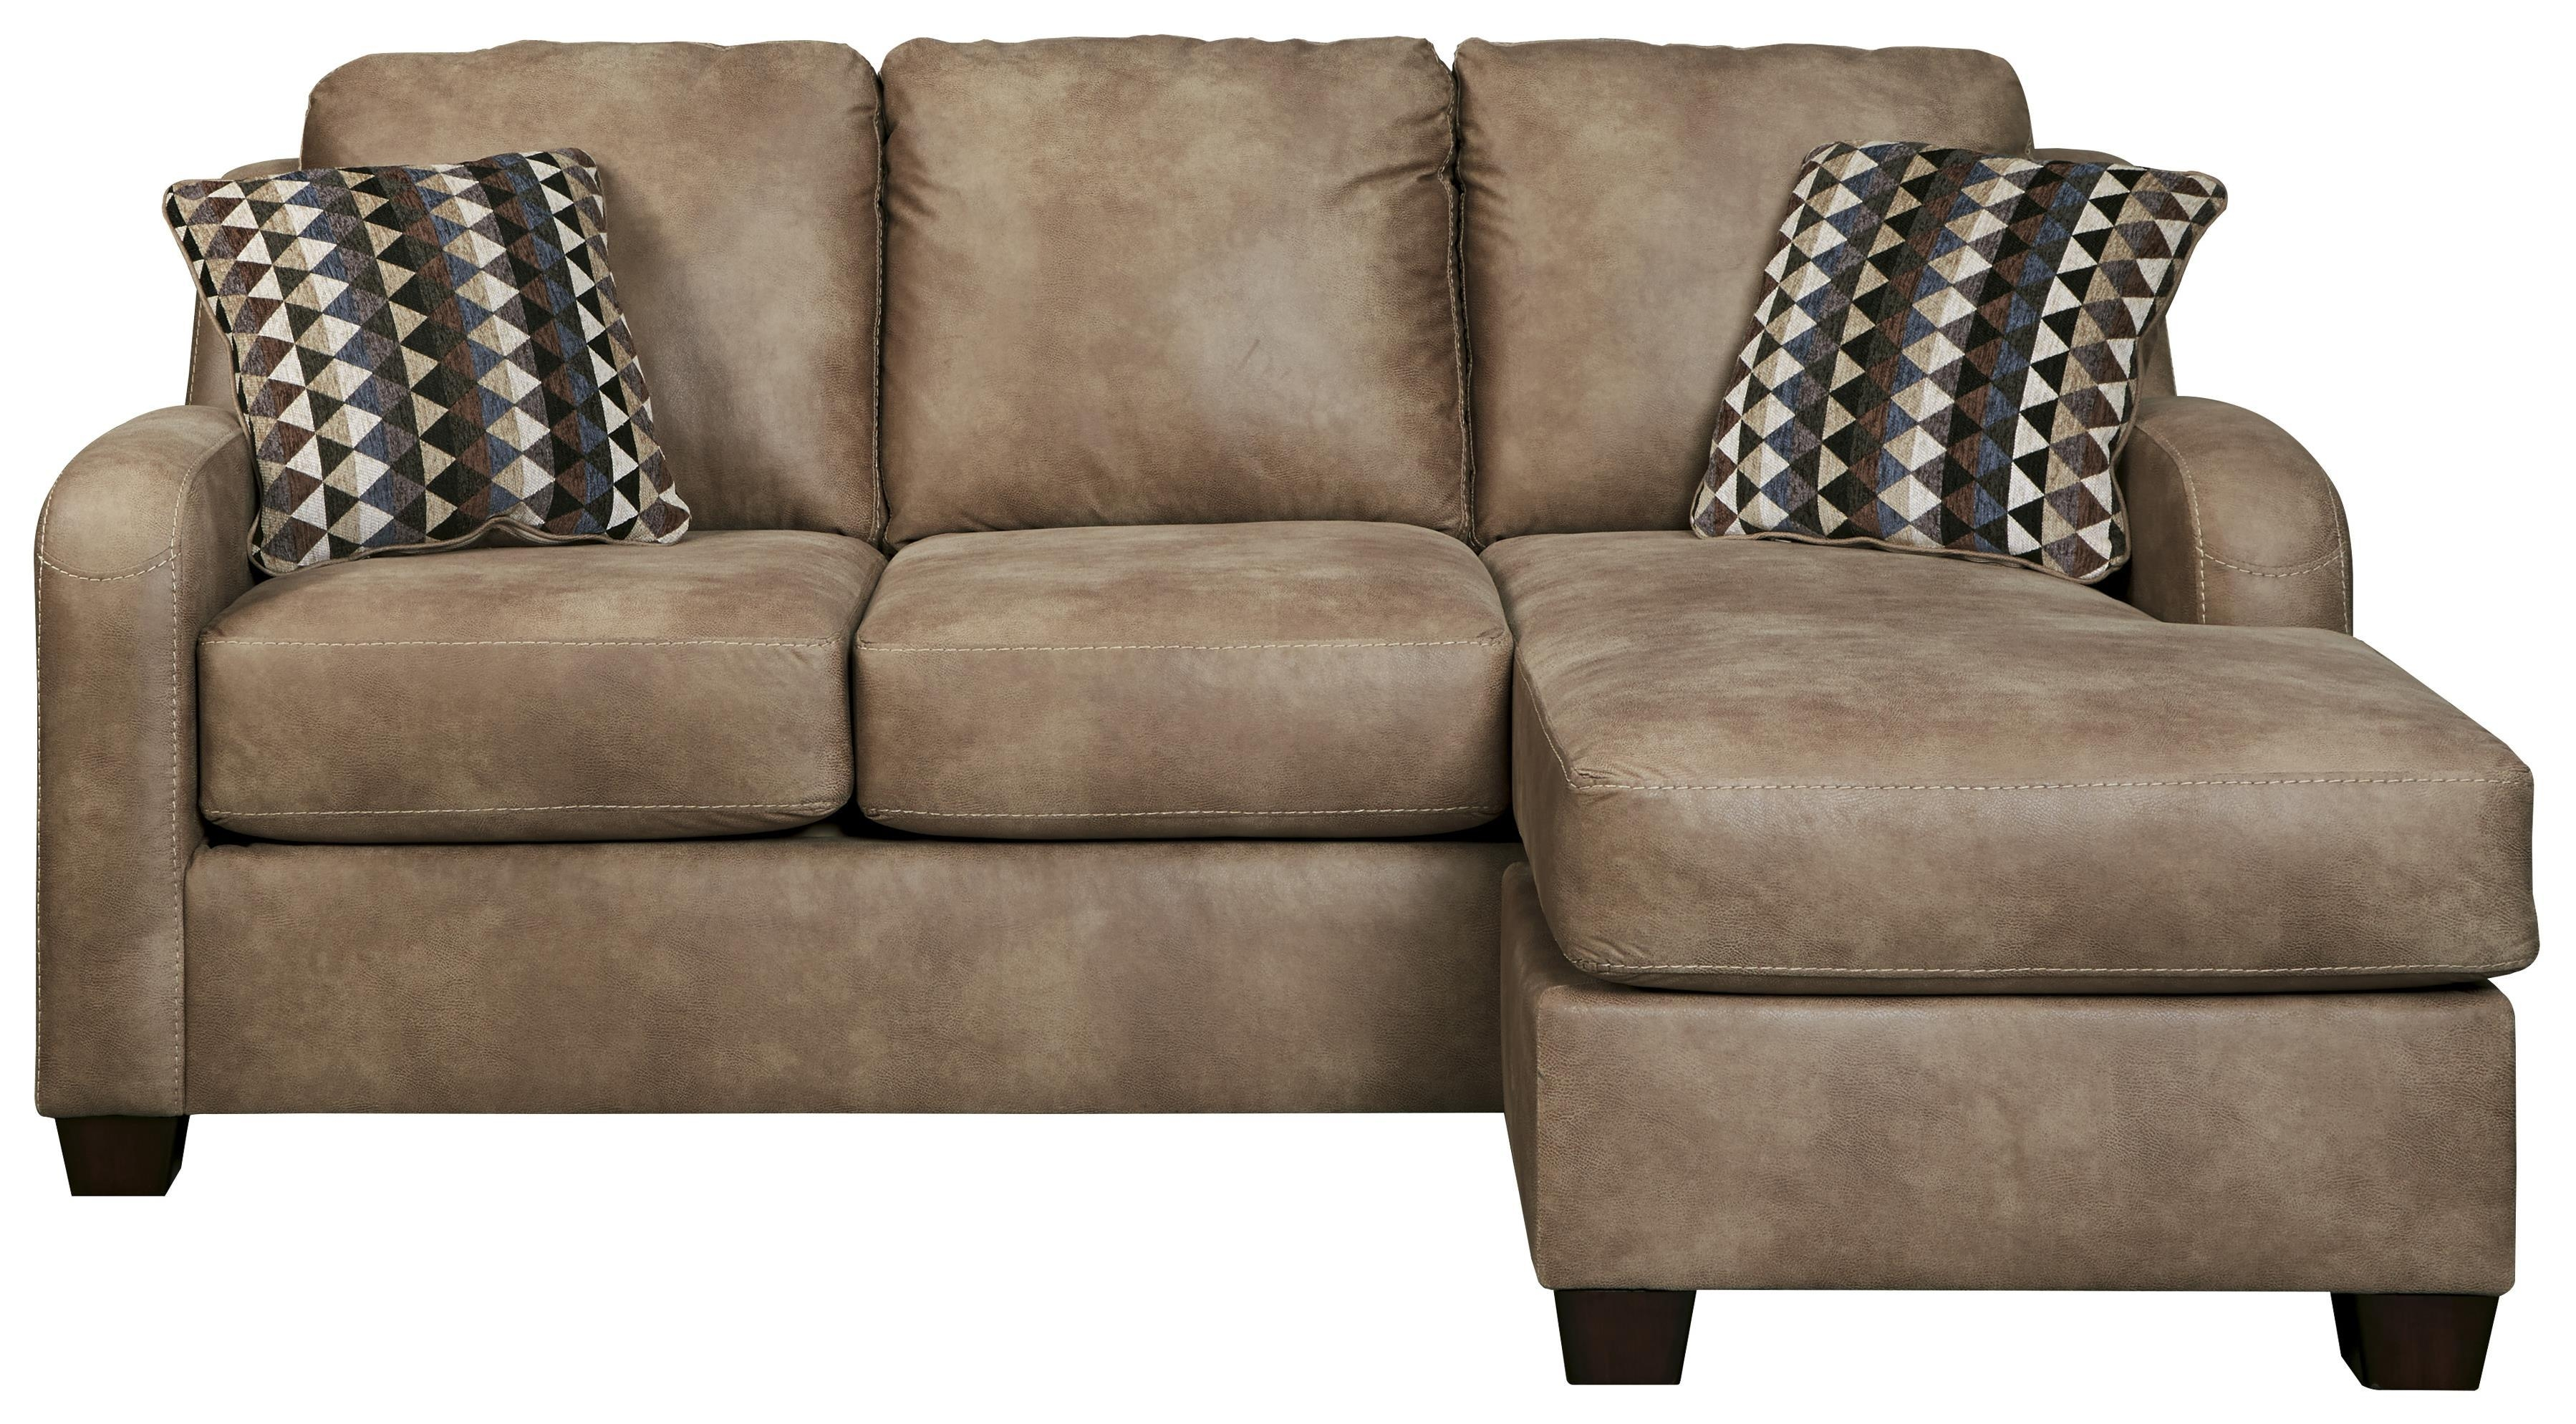 Benchcraft Alturo Contemporary Faux Leather Sofa Chaise – Dunk Throughout Smith Brothers Sofas (Image 1 of 20)